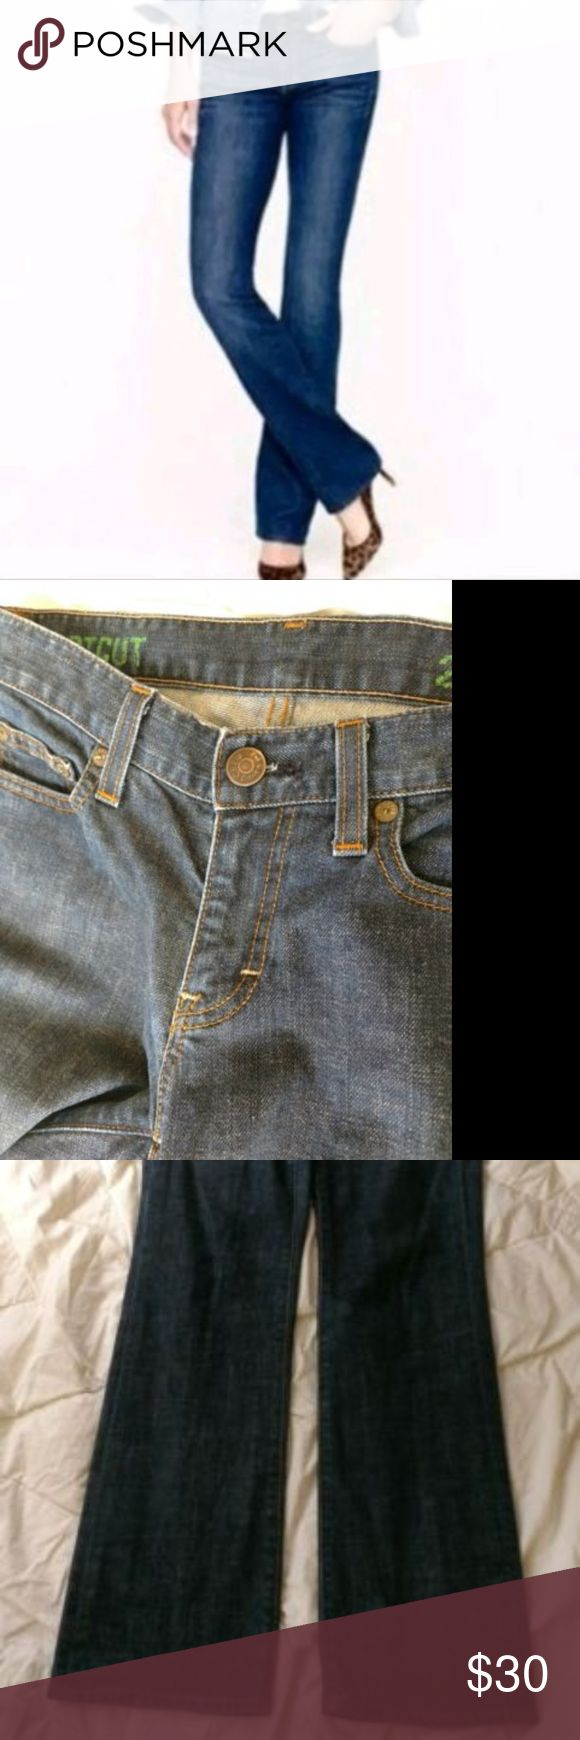 """J. Crew Womens Bootcut Dark Wash Jeans Size 26 J. Crew Women's dark wash boot cut jeans. Size 26s. Gently used without flaws.   Measurements  Waist: 15""""  Rise: 8""""  Inseam: 30"""" J. Crew Jeans Boot Cut"""